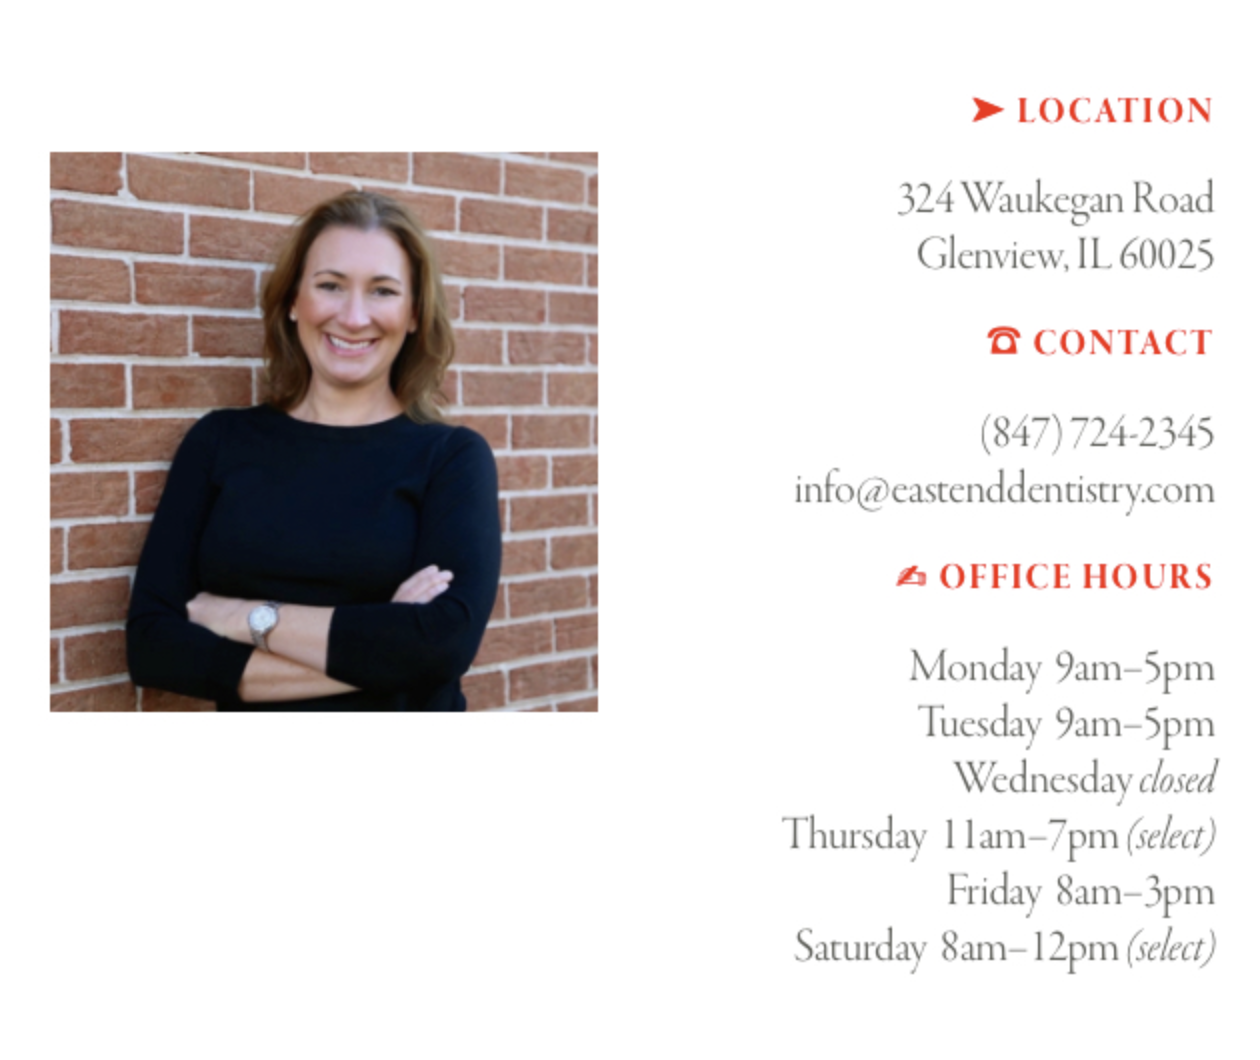 New office hours June 10.png